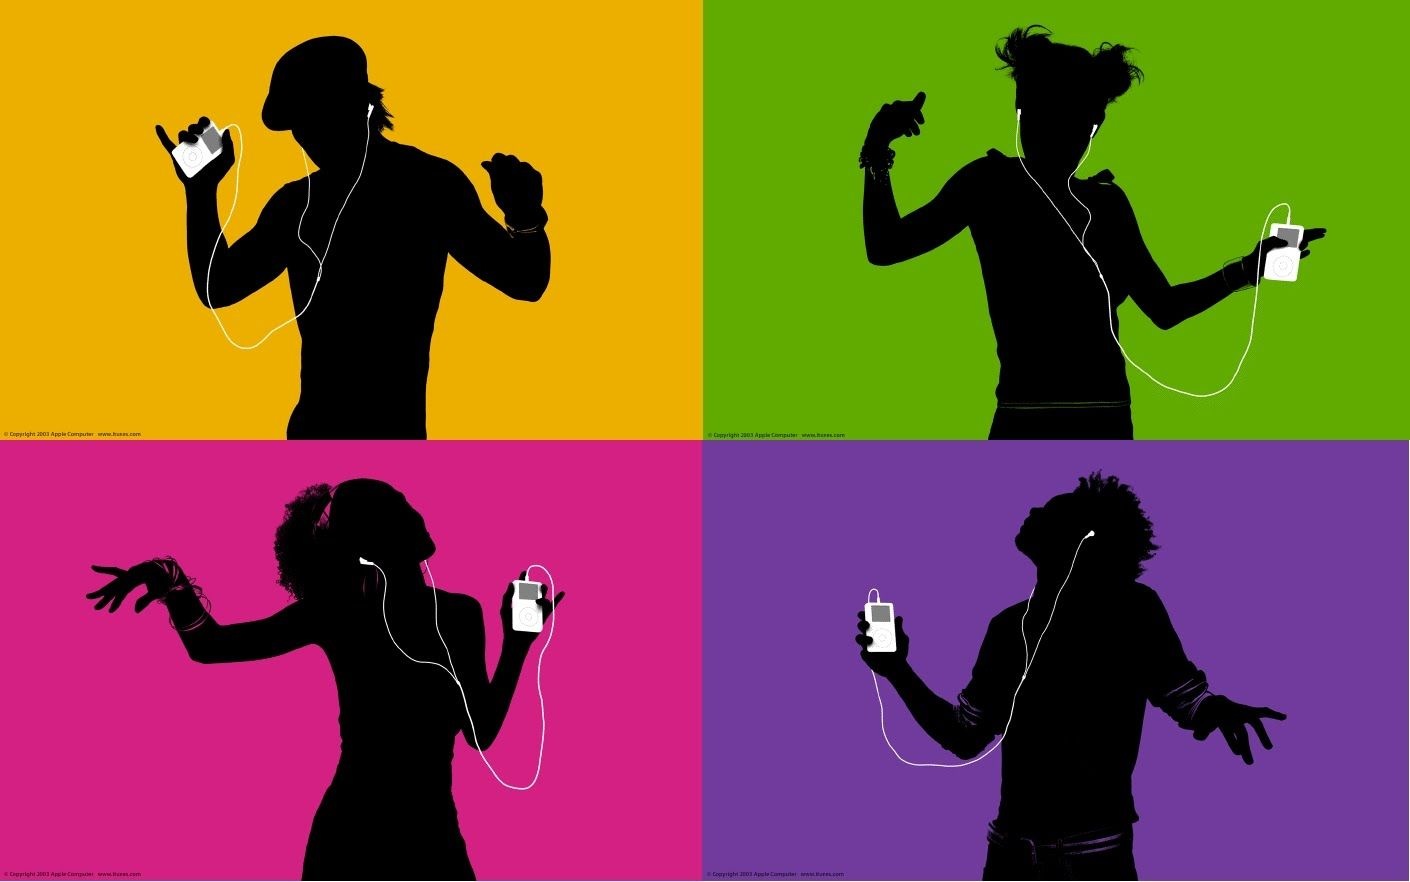 Apple complete ipod silhouette ad campaign compilation